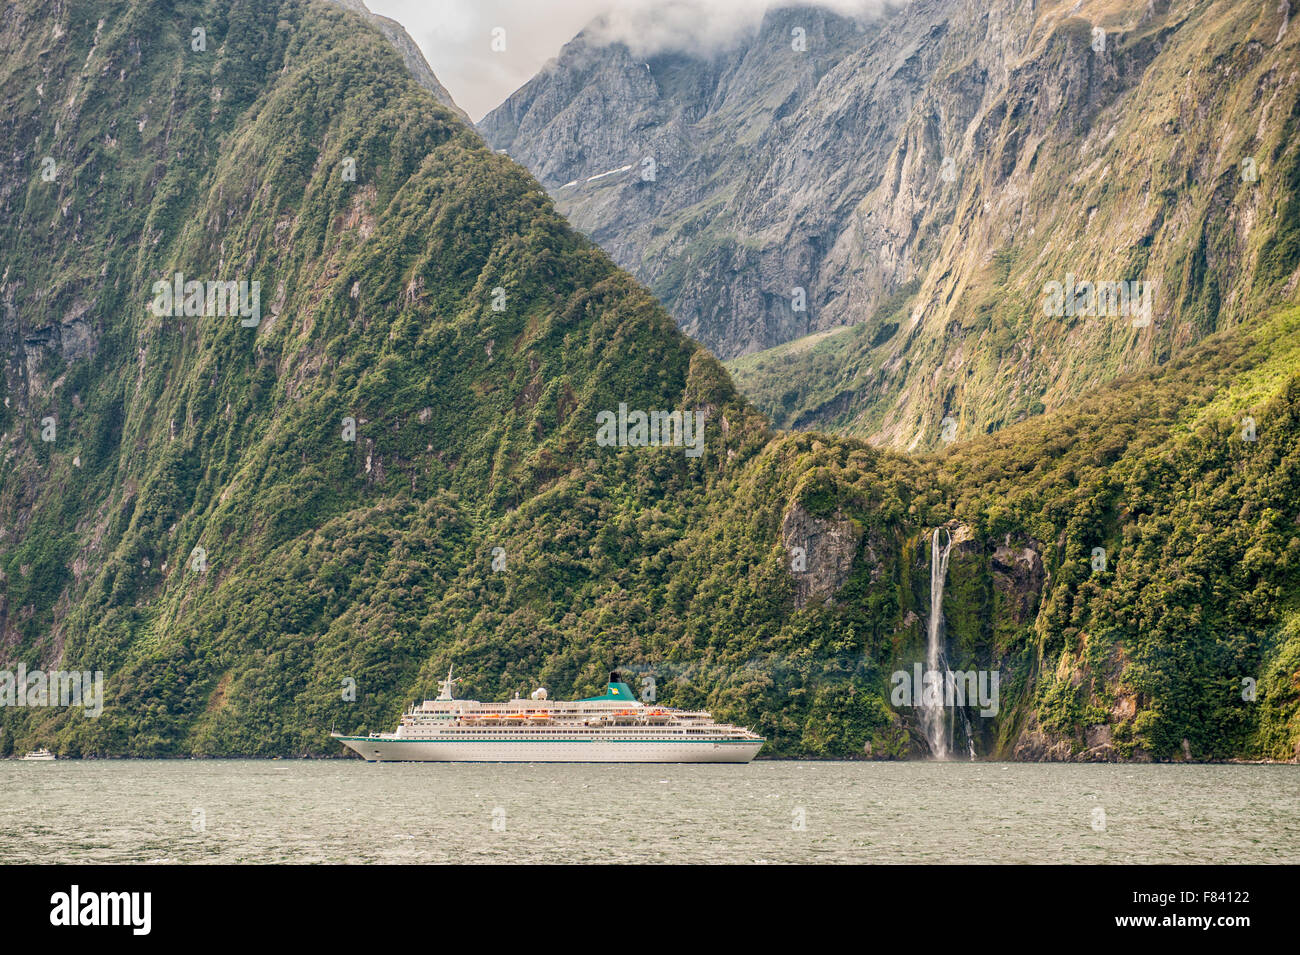 Milford sound, Fiordland National Park, South Island, New Zealand - Stock Image